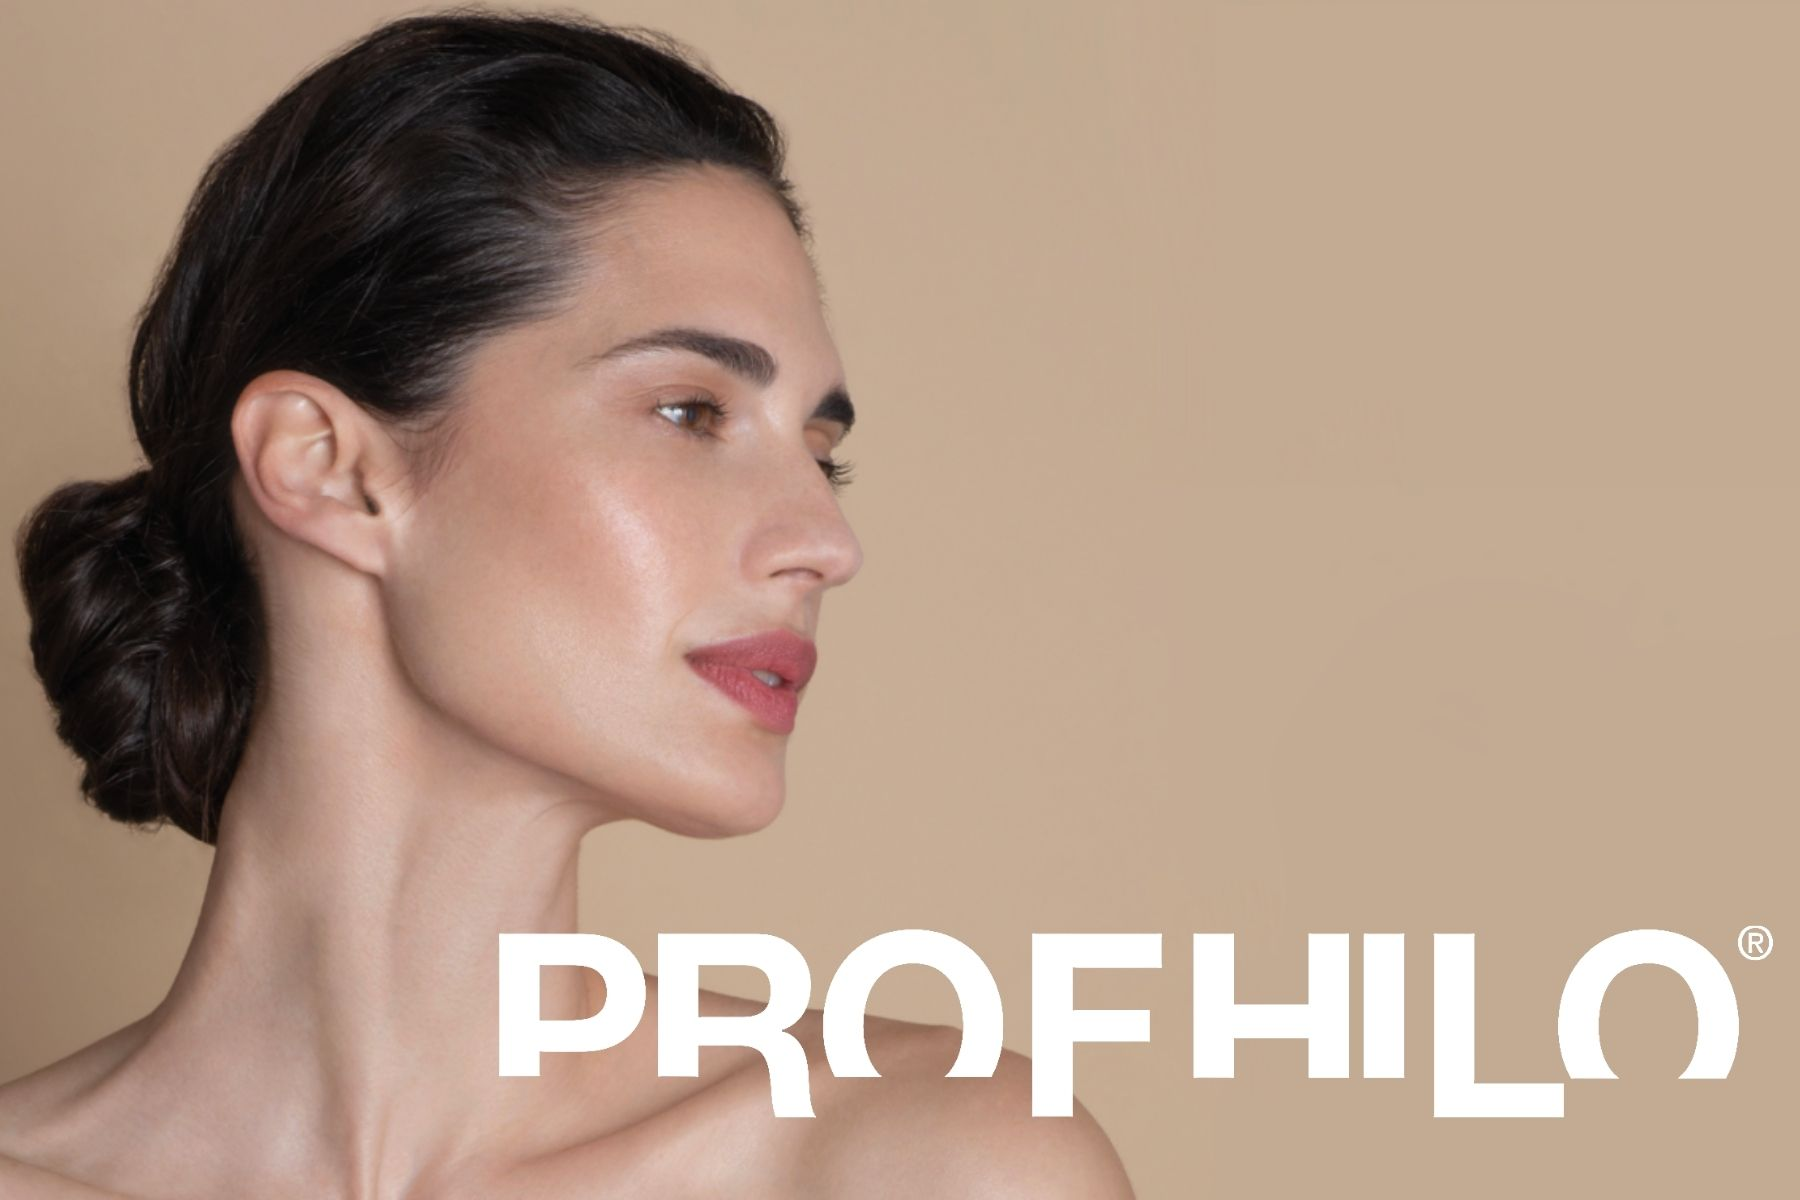 """4 Benefits Of Profhilo, An Anti-Ageing """"Injectable"""" Treatment That Hydrates Your Skin From The Inside Out"""